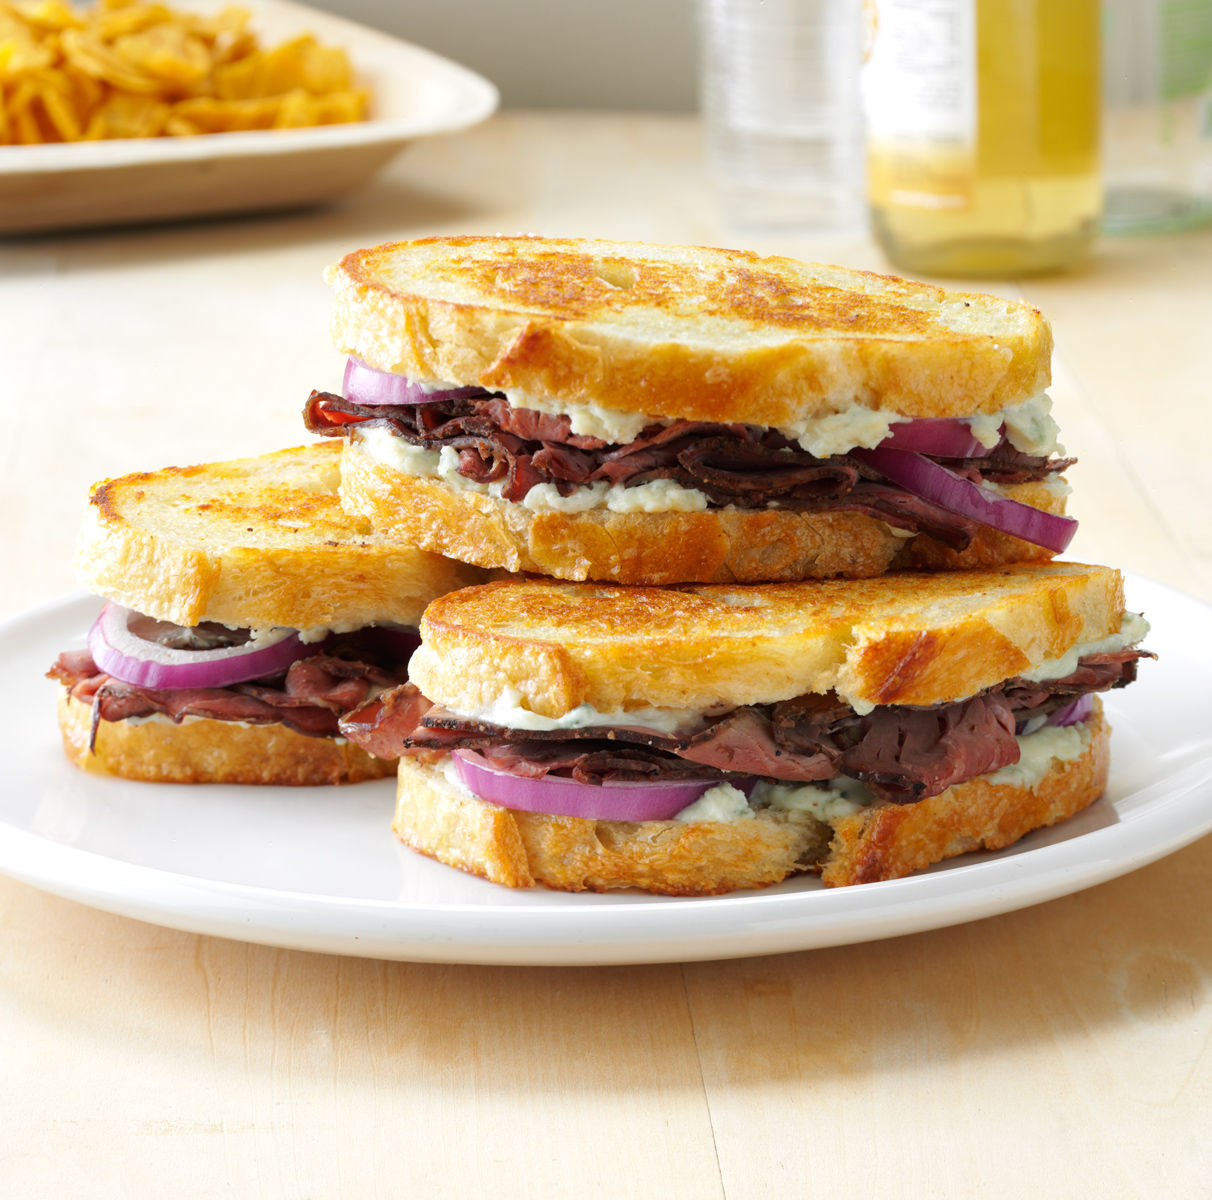 Roast Beef and Blue Cheese Sandwich with red onion photo by Chris Kessler Photography.  Chris Kessler is a freelance Photographer based in Milwaukee Wisconsin. Specializing in Food photography and portraiture.